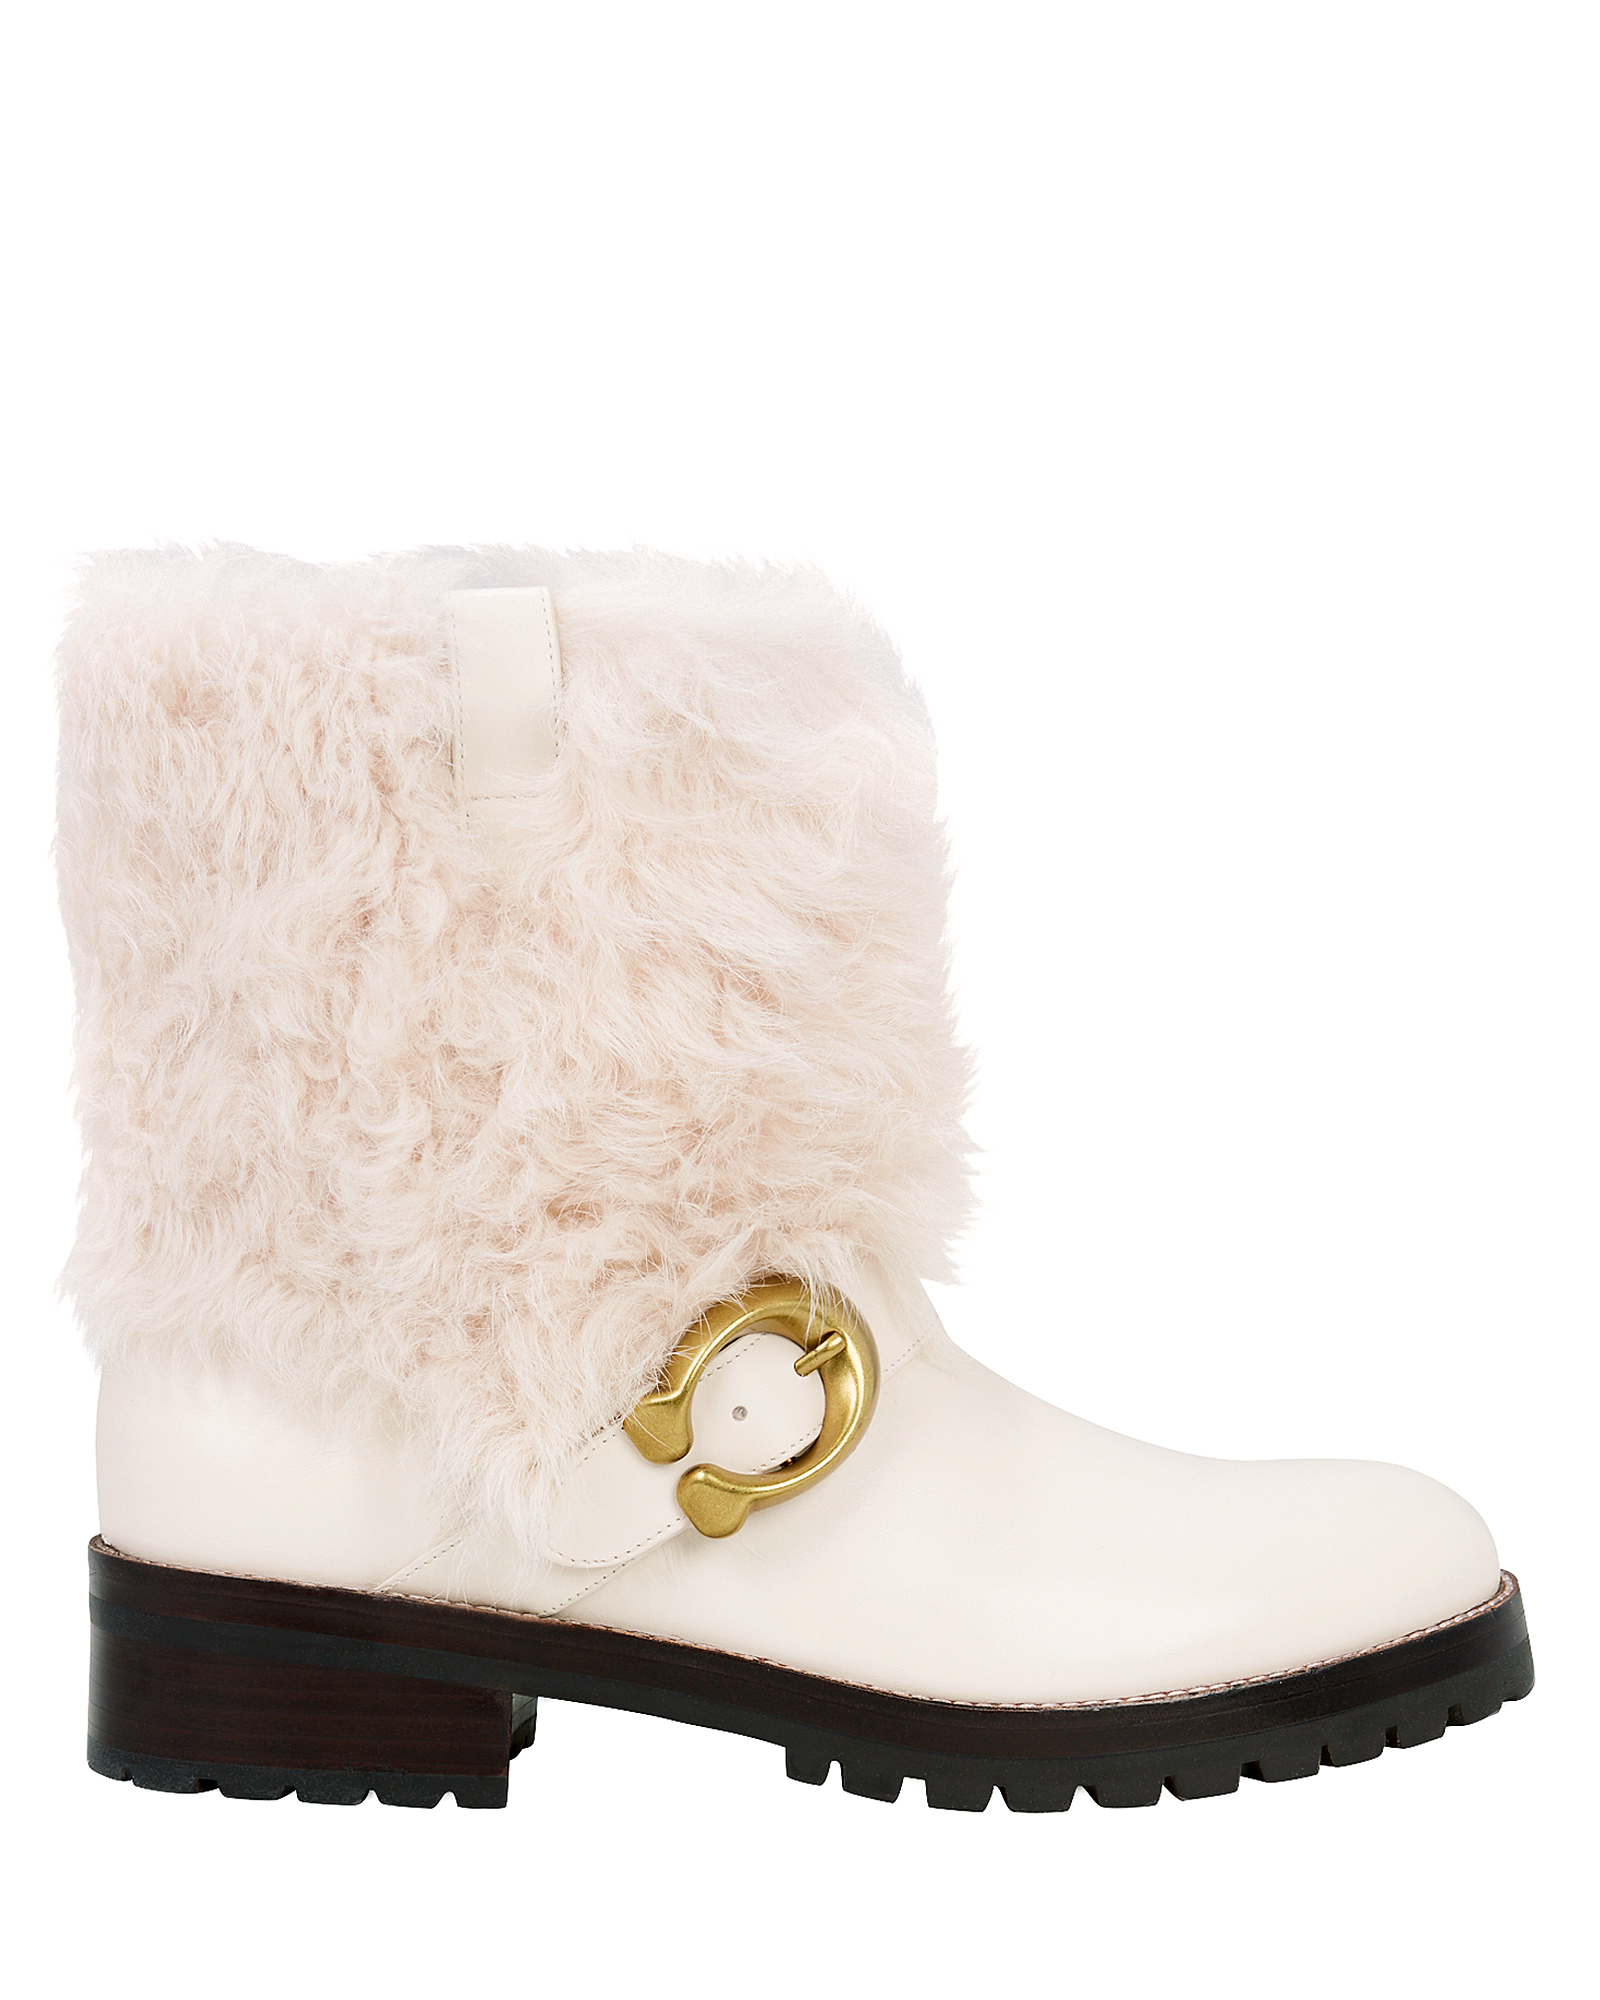 COACH Leighton Shearling-Cuff Leather Buckle Boots in White